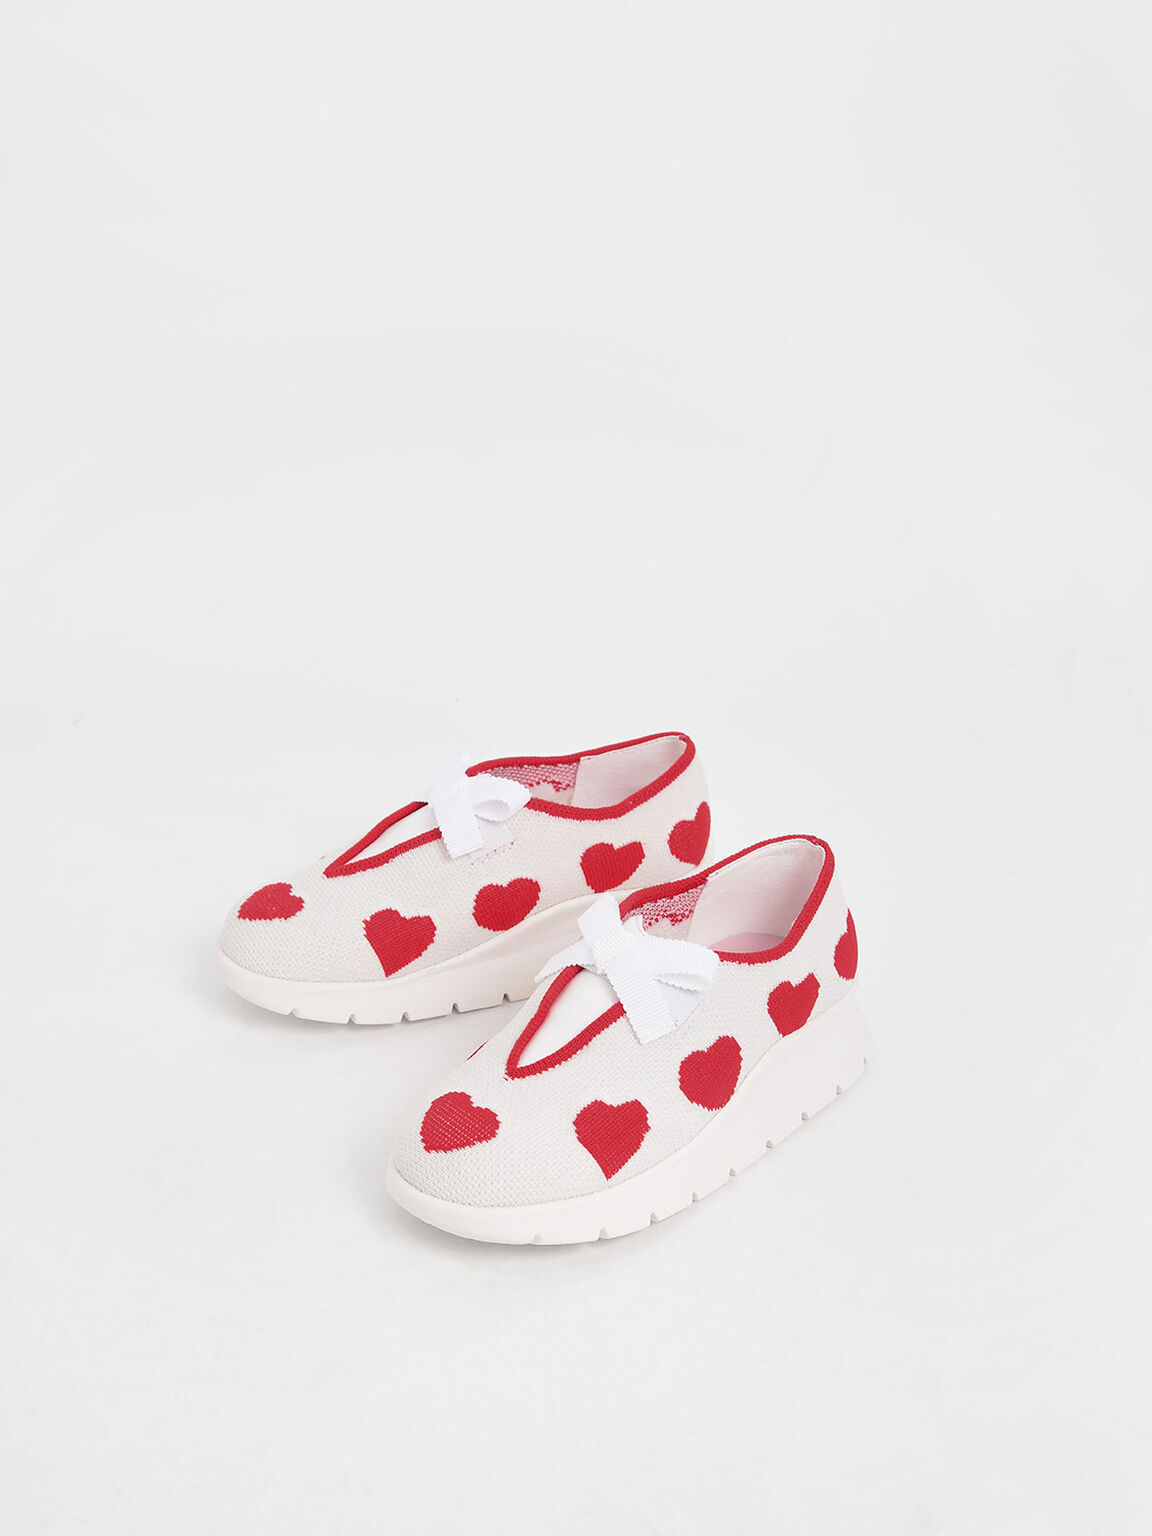 Girls' Heart Print Knitted Sneakers, White, hi-res